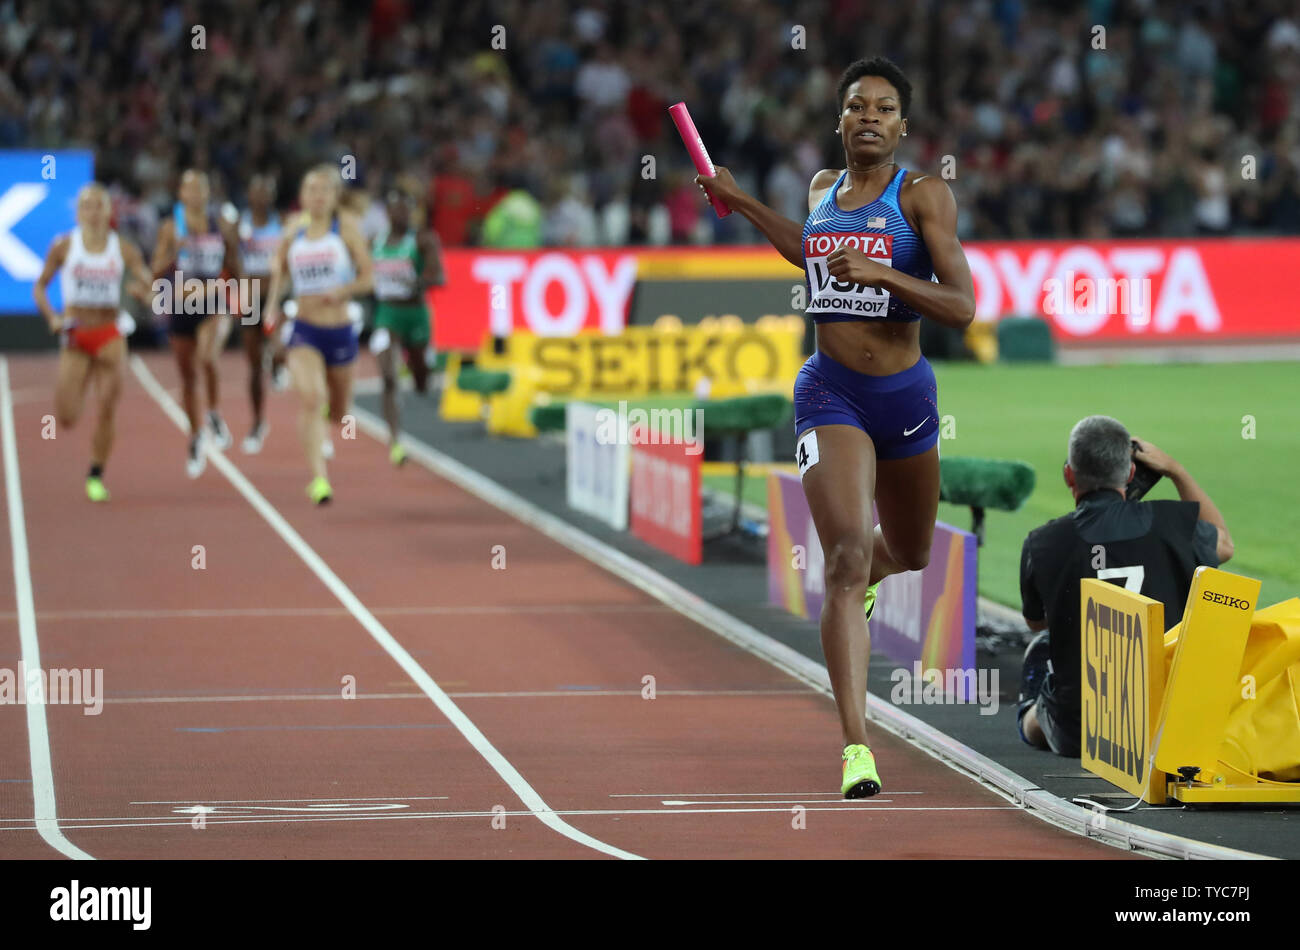 American Phyllis Francis wins the Women's 4 x 400 Metres Relay Final at the 2017 IAAF World Athletics Championships at the Olympic Stadium, London on August 13, 2017.    Photo by Hugo Philpott/UPI - Stock Image